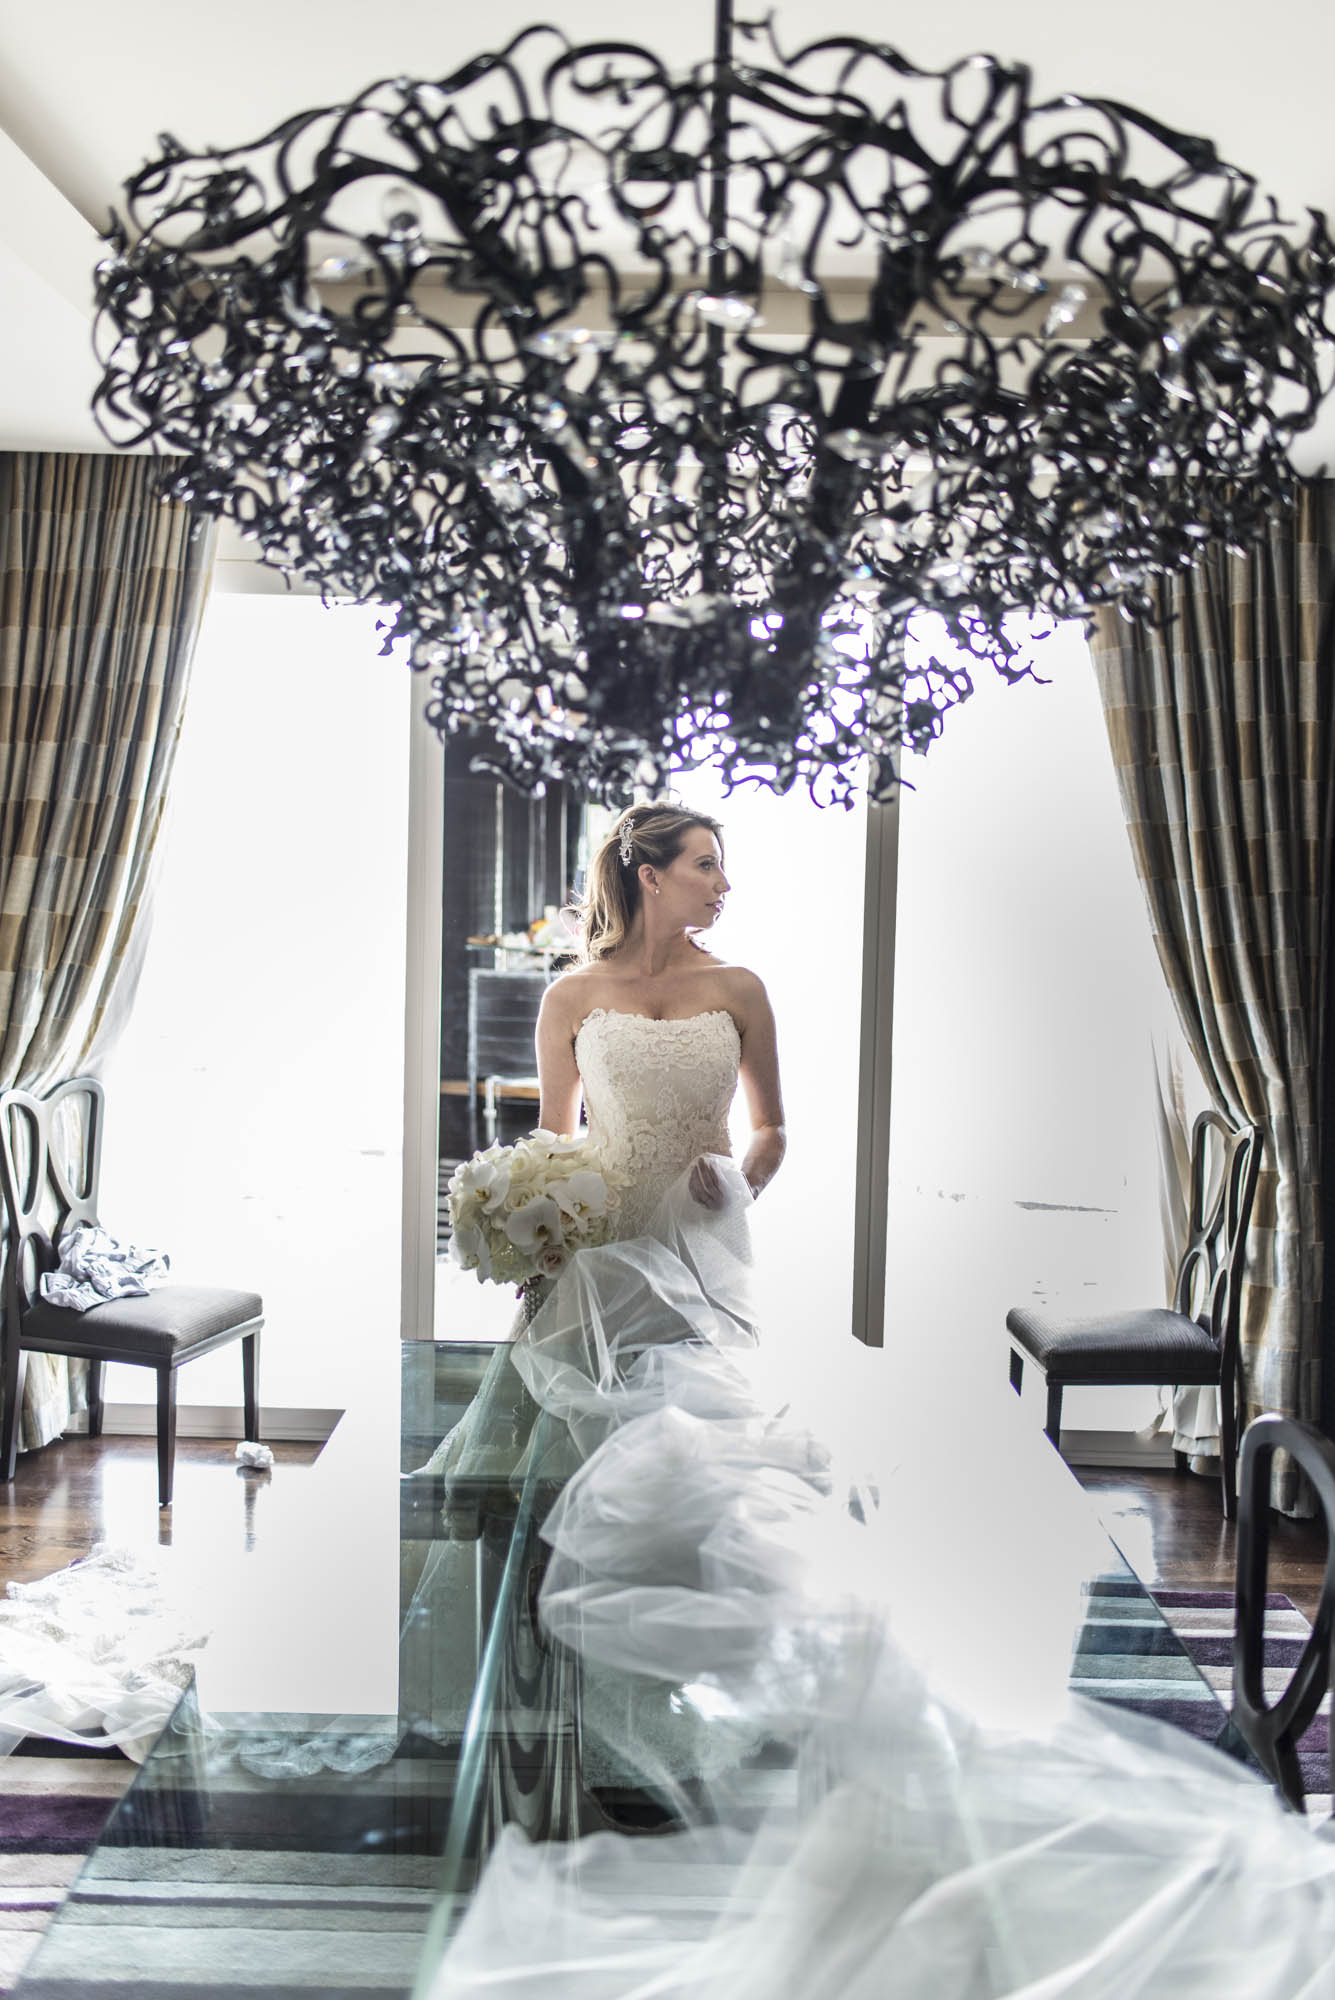 Bridal Portrait at Mandarin Oriental.   CREATIVE PARTNERS:    PHOTOGRAPHY •  AltF Photography  ,PLANNING •  Andrea Eppolito Events  ,FLORAL AND DECOR DESIGN •  Destinations by Design  ,VENUE AND CATERING •  Mandarin Oriental, Las Vegas  ,STATIONERY DESIGN •  Paper and Home  ,  BRIDE'S GOWN • Vera Wang ,SHOES • Jimmy Choo ,  GROOM'S FORMAL WEAR •  Vera Wang  ,  ENGAGEMENT RING • Delage Jewelers ,  WEDDING BANDS • T-Birds Jewels   ,  CAKE DESIGN • Mandarin Oriental Las Vegas , DRAPING;  DANCE FLOOR DESIGN AND PRODUCTION • Destination by Design ,  LIVE EVENT ARTIST • Sam Day ,ENTERTAINMENT  • Lucky Devils Band ,CINEMATOGRAPHY • Something New